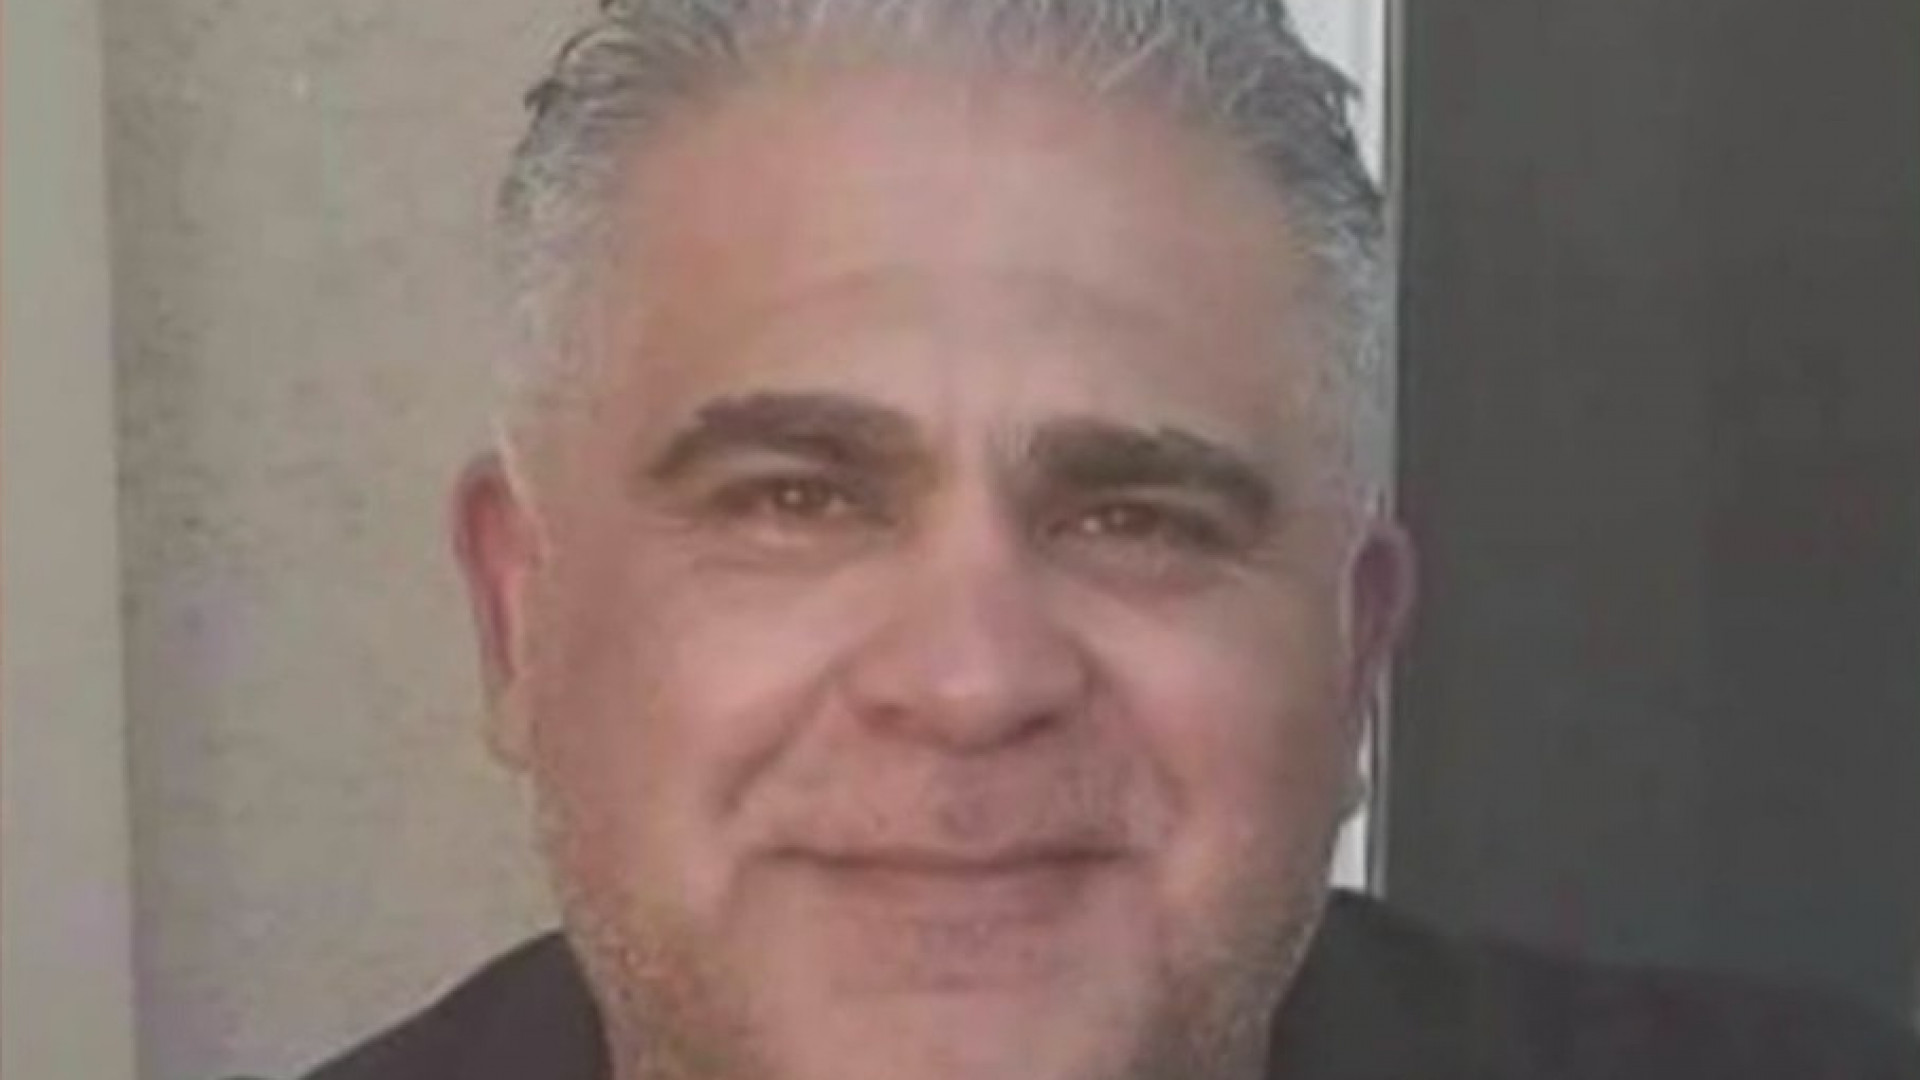 Francisco Aguilar, 48, is a Los Angeles firefighter who went missing on Aug. 20, 2020, in Rosarito, Mexico. This photo was provided by family to KTLA.